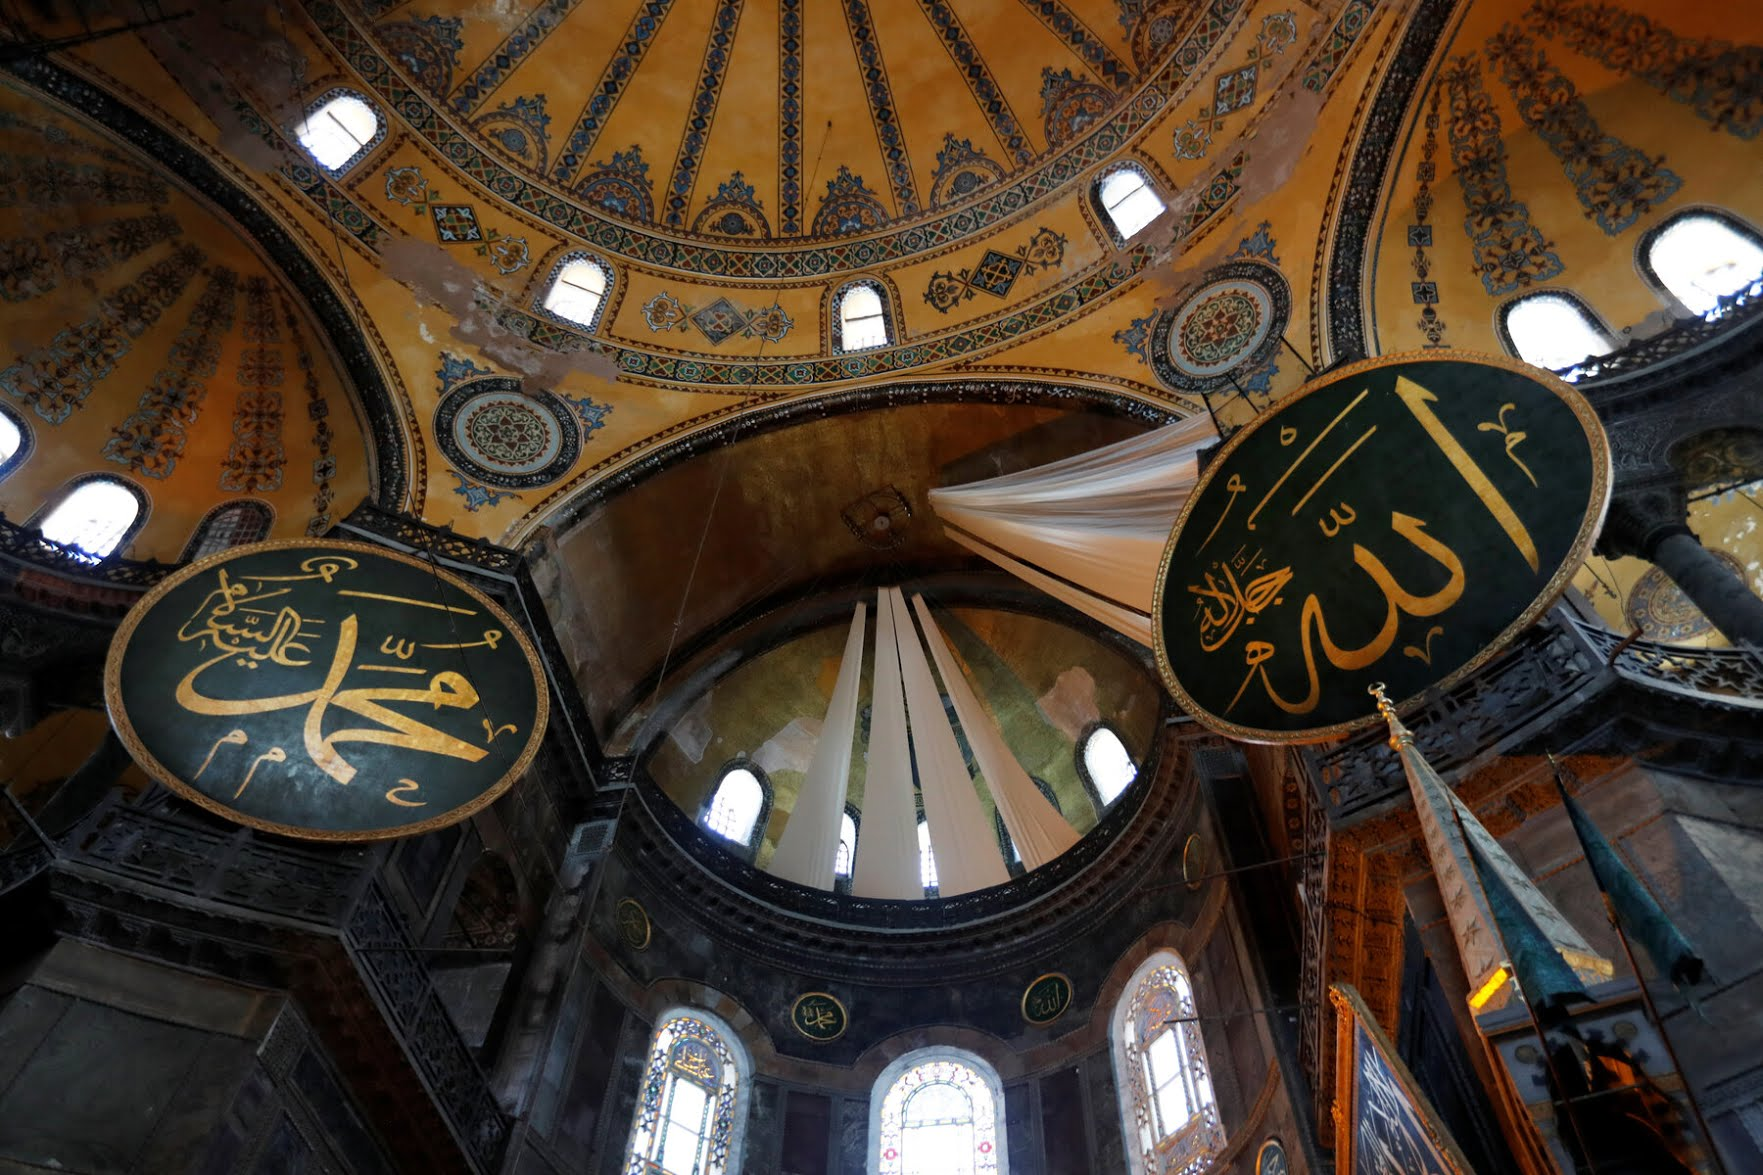 Drapes covered Christian artwork in Hagia Sophia for its reopening as a mosque.